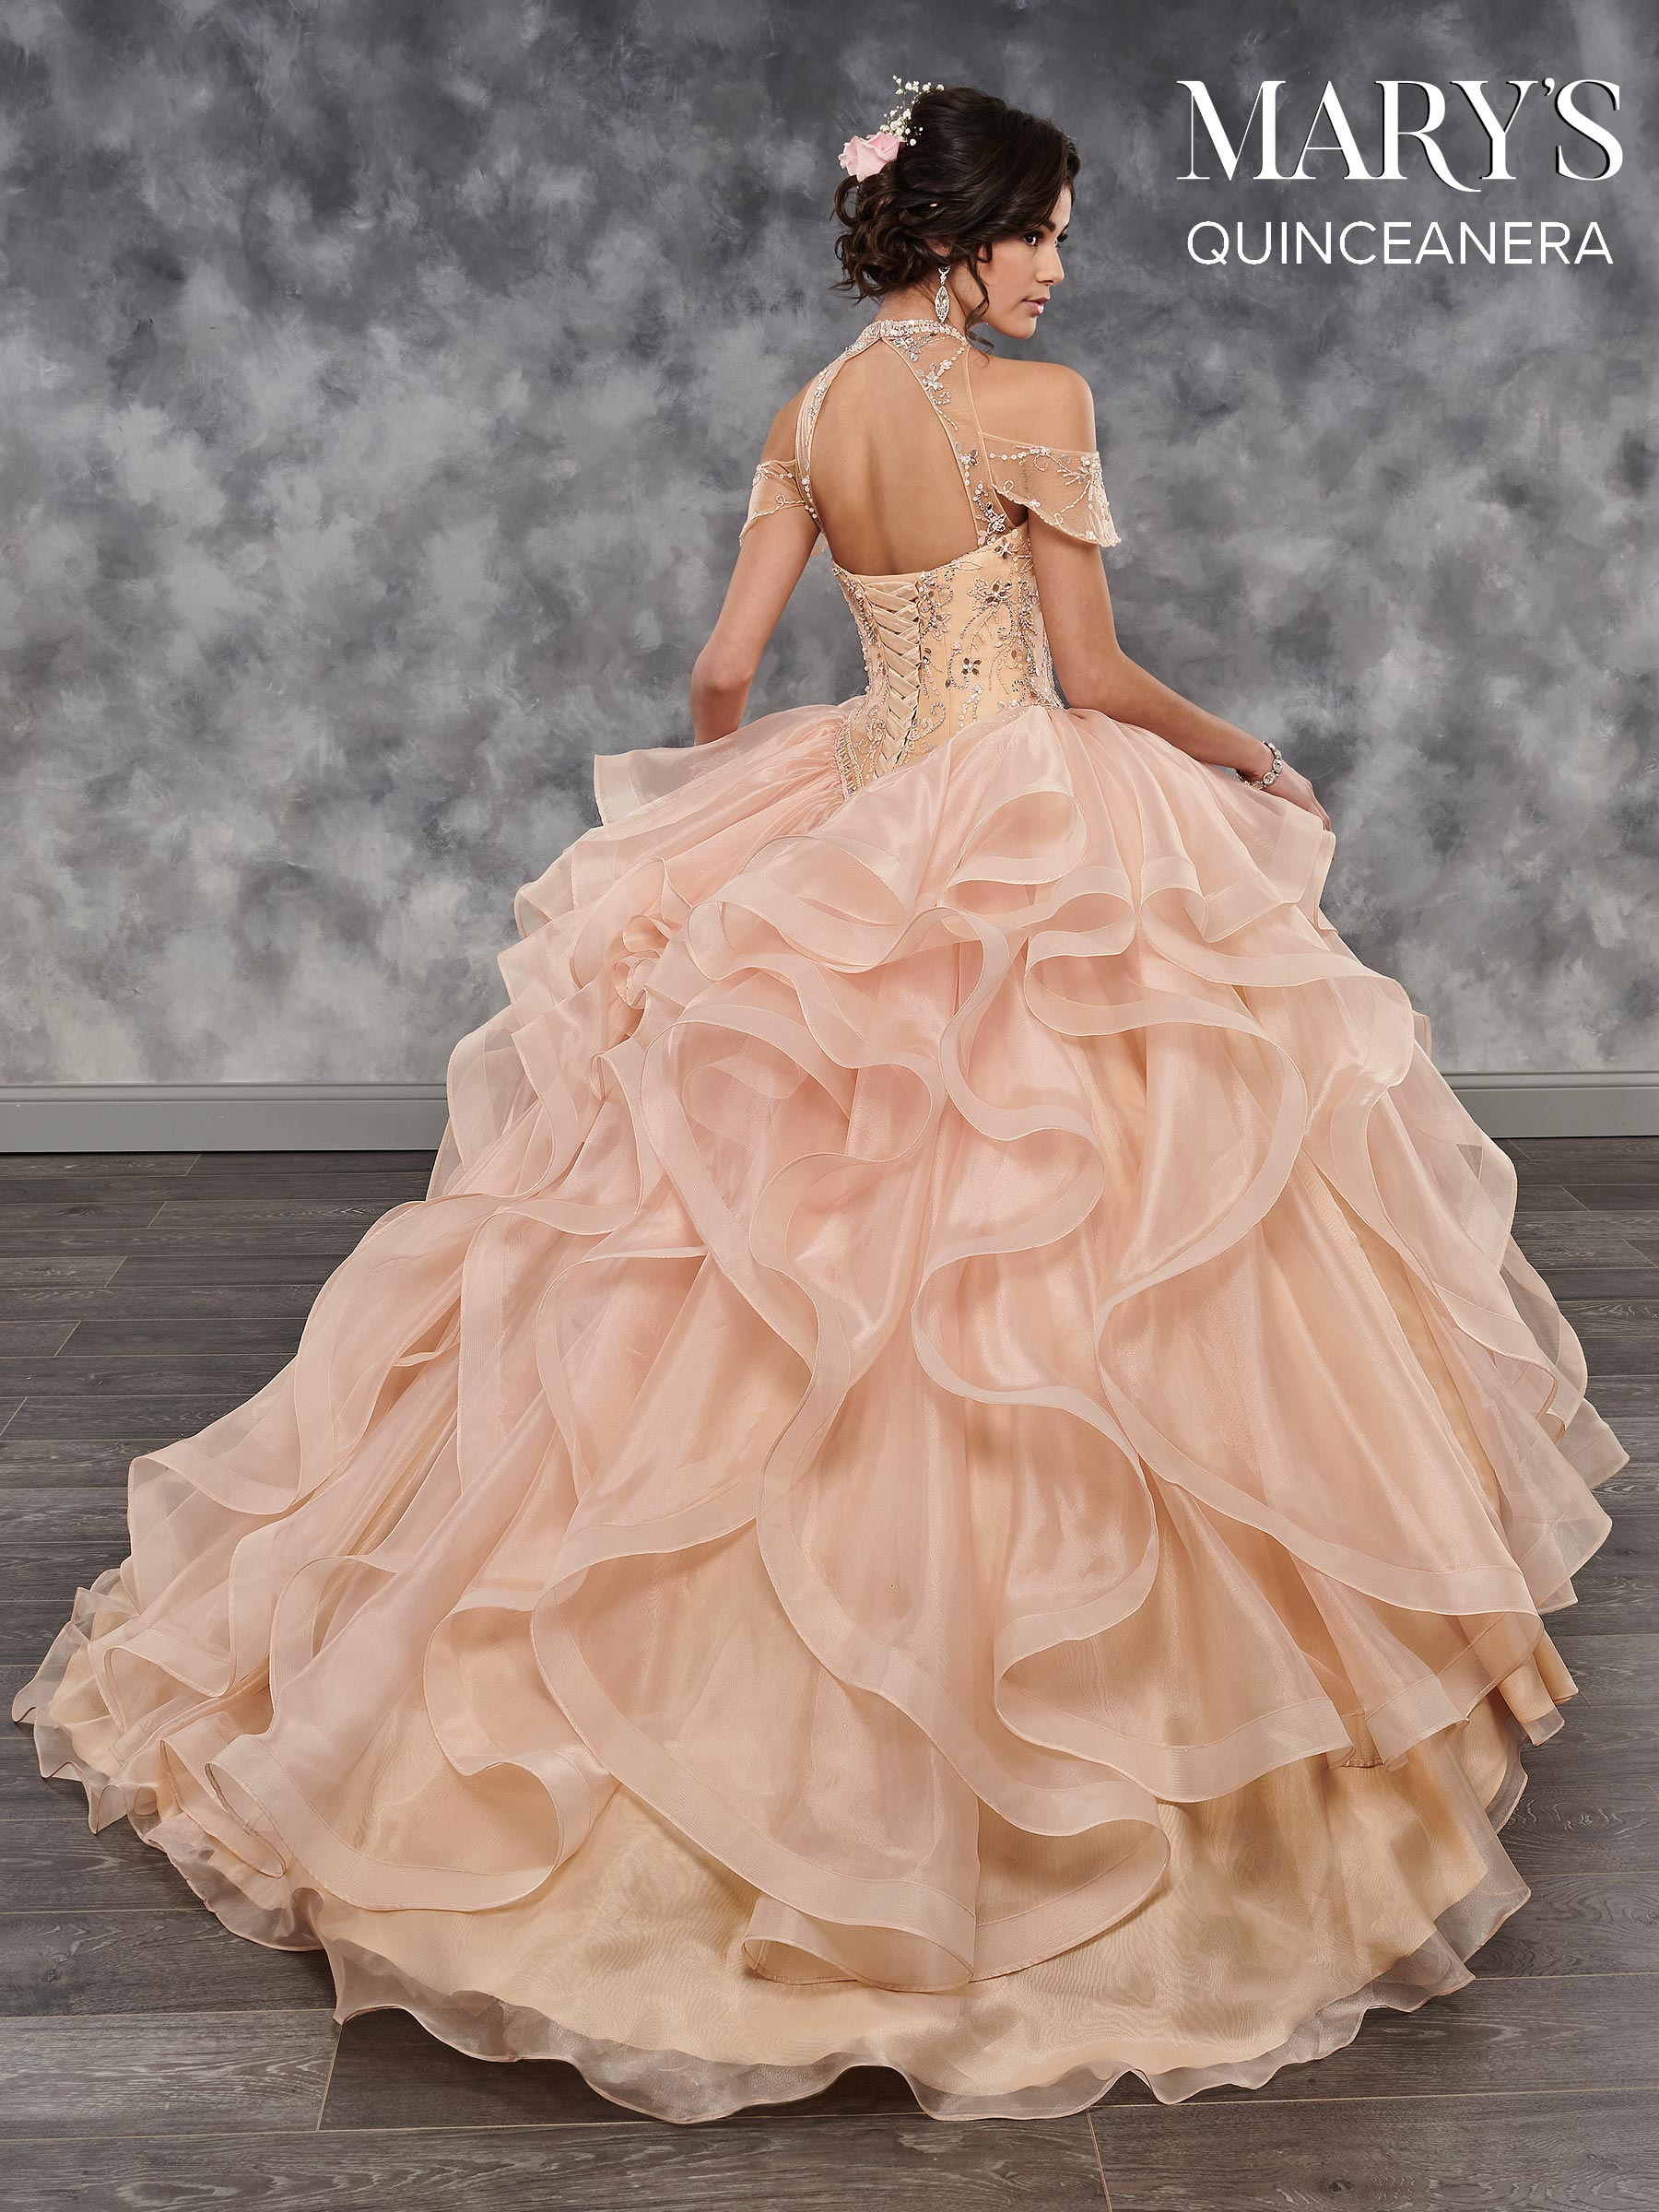 Marys Quinceanera Dresses | Mary's Quinceanera | Style - MQ2034